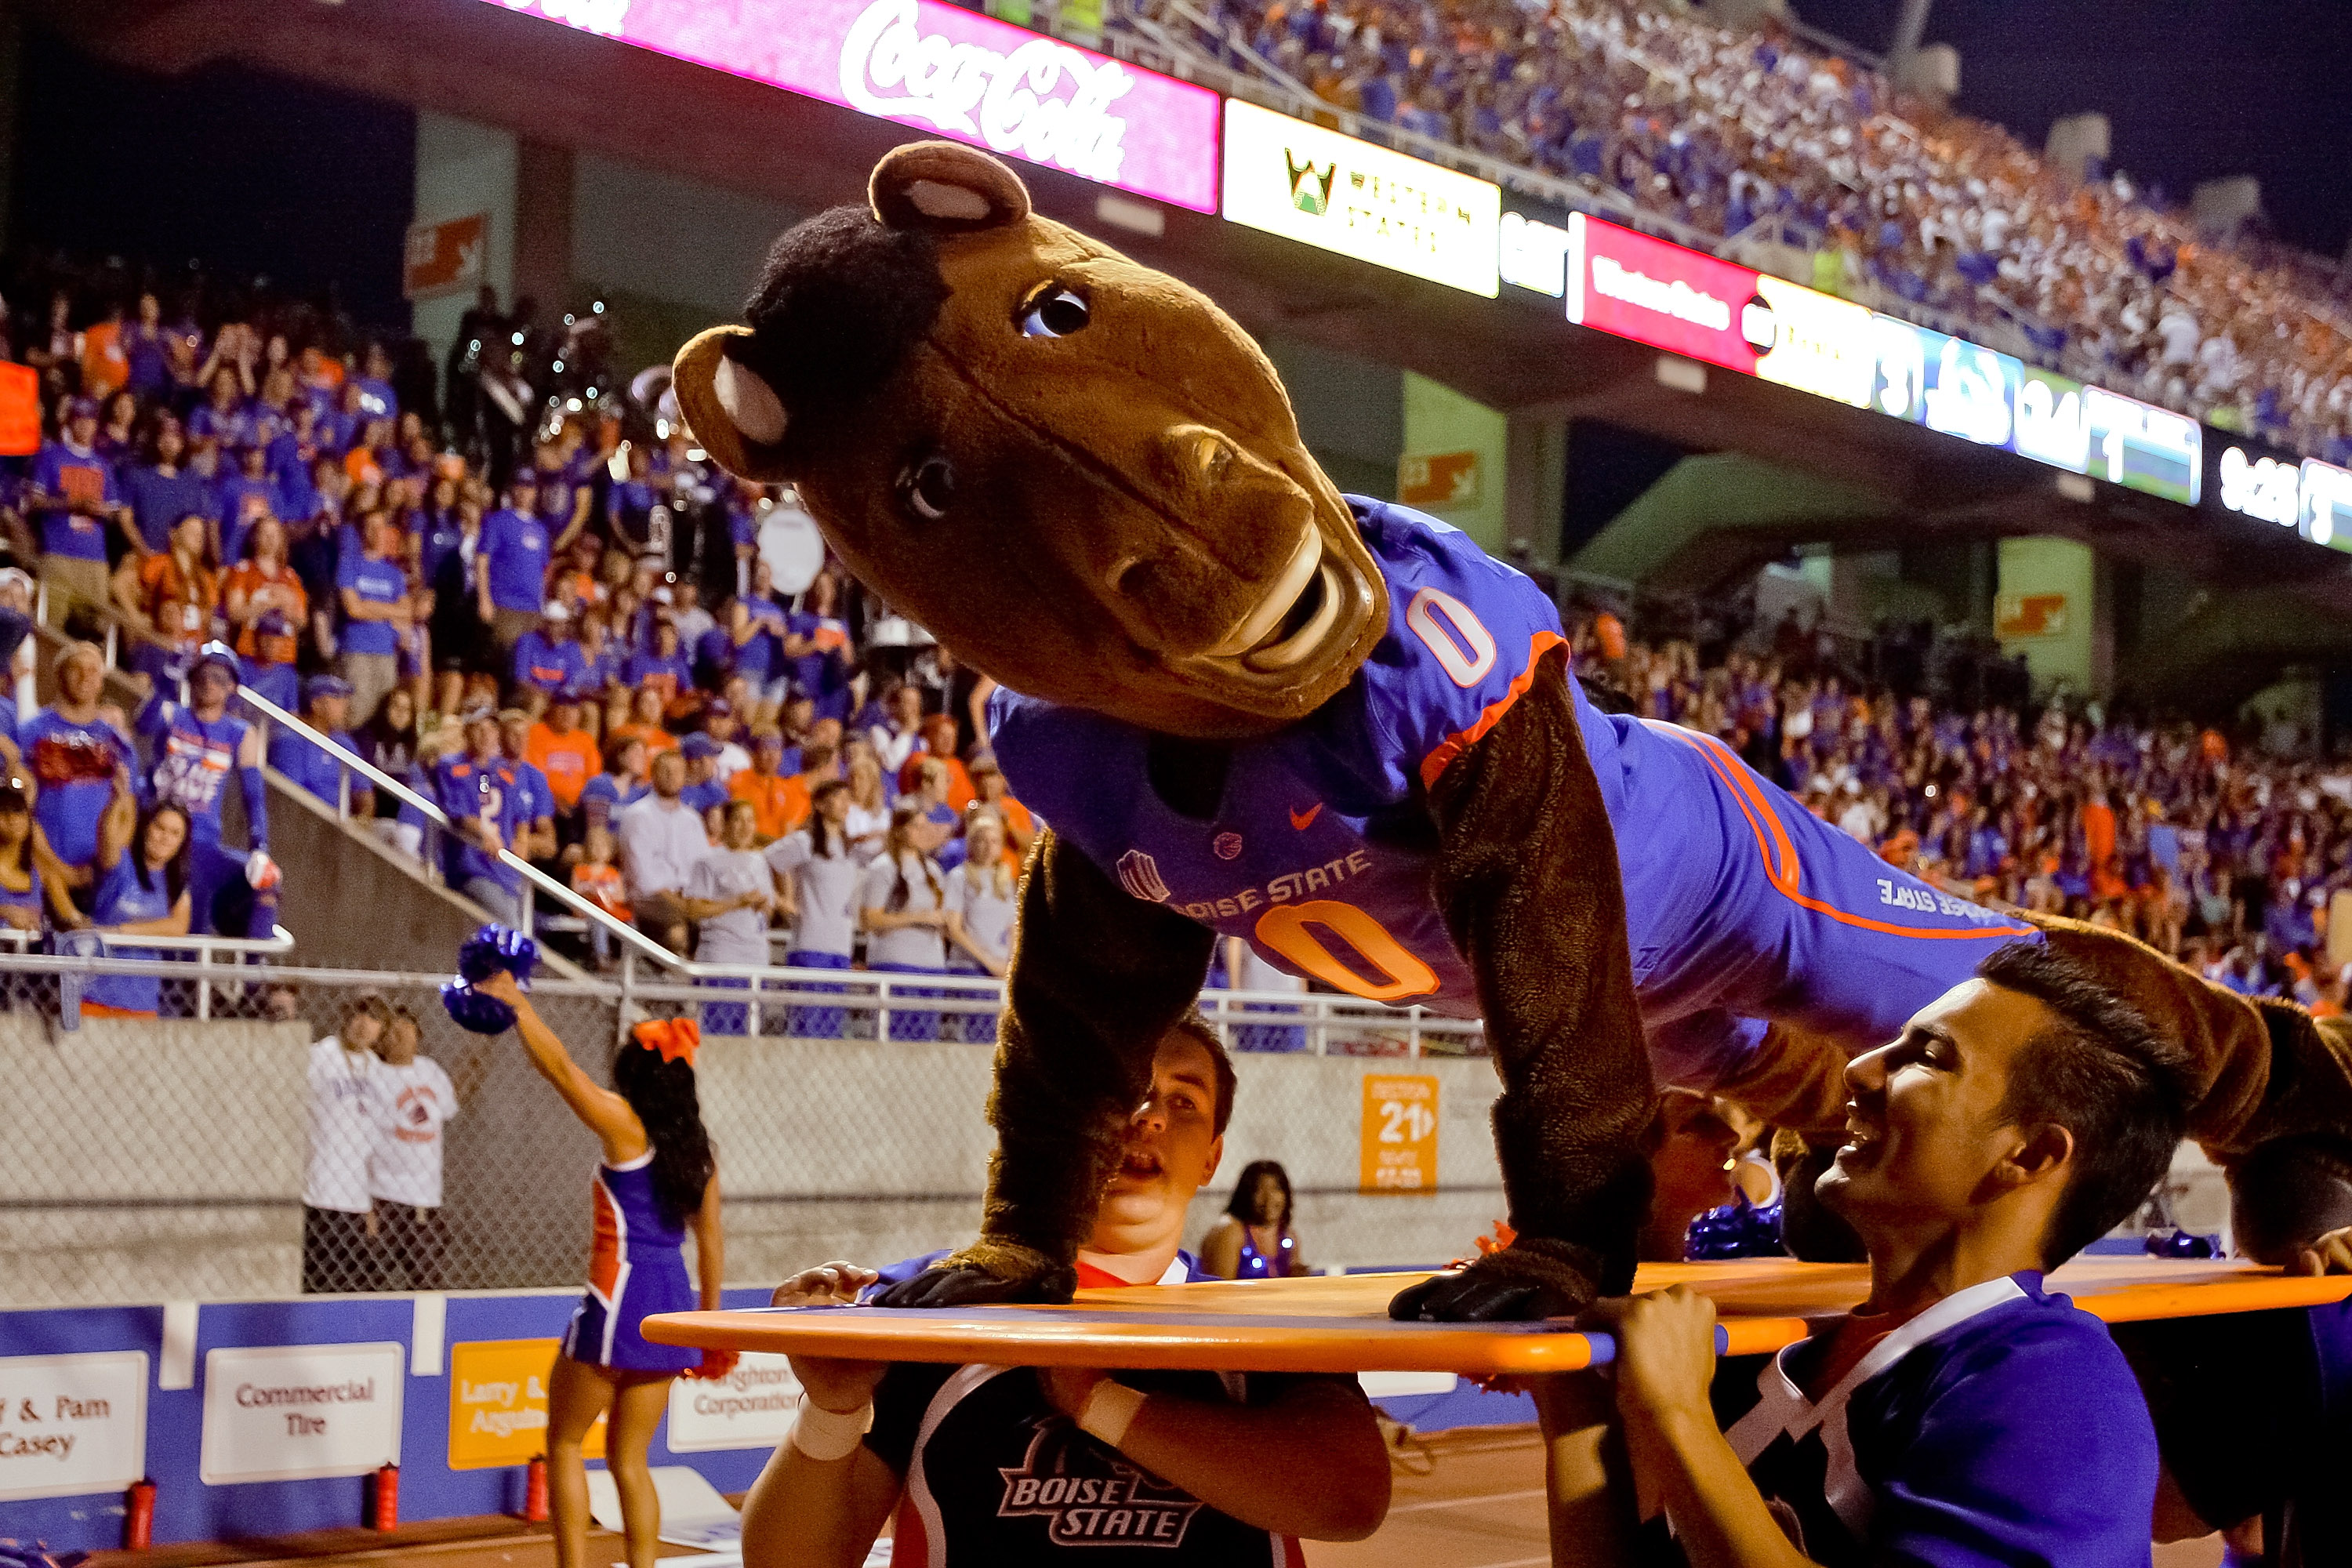 Boise State Picked To Make The College Football Playoff